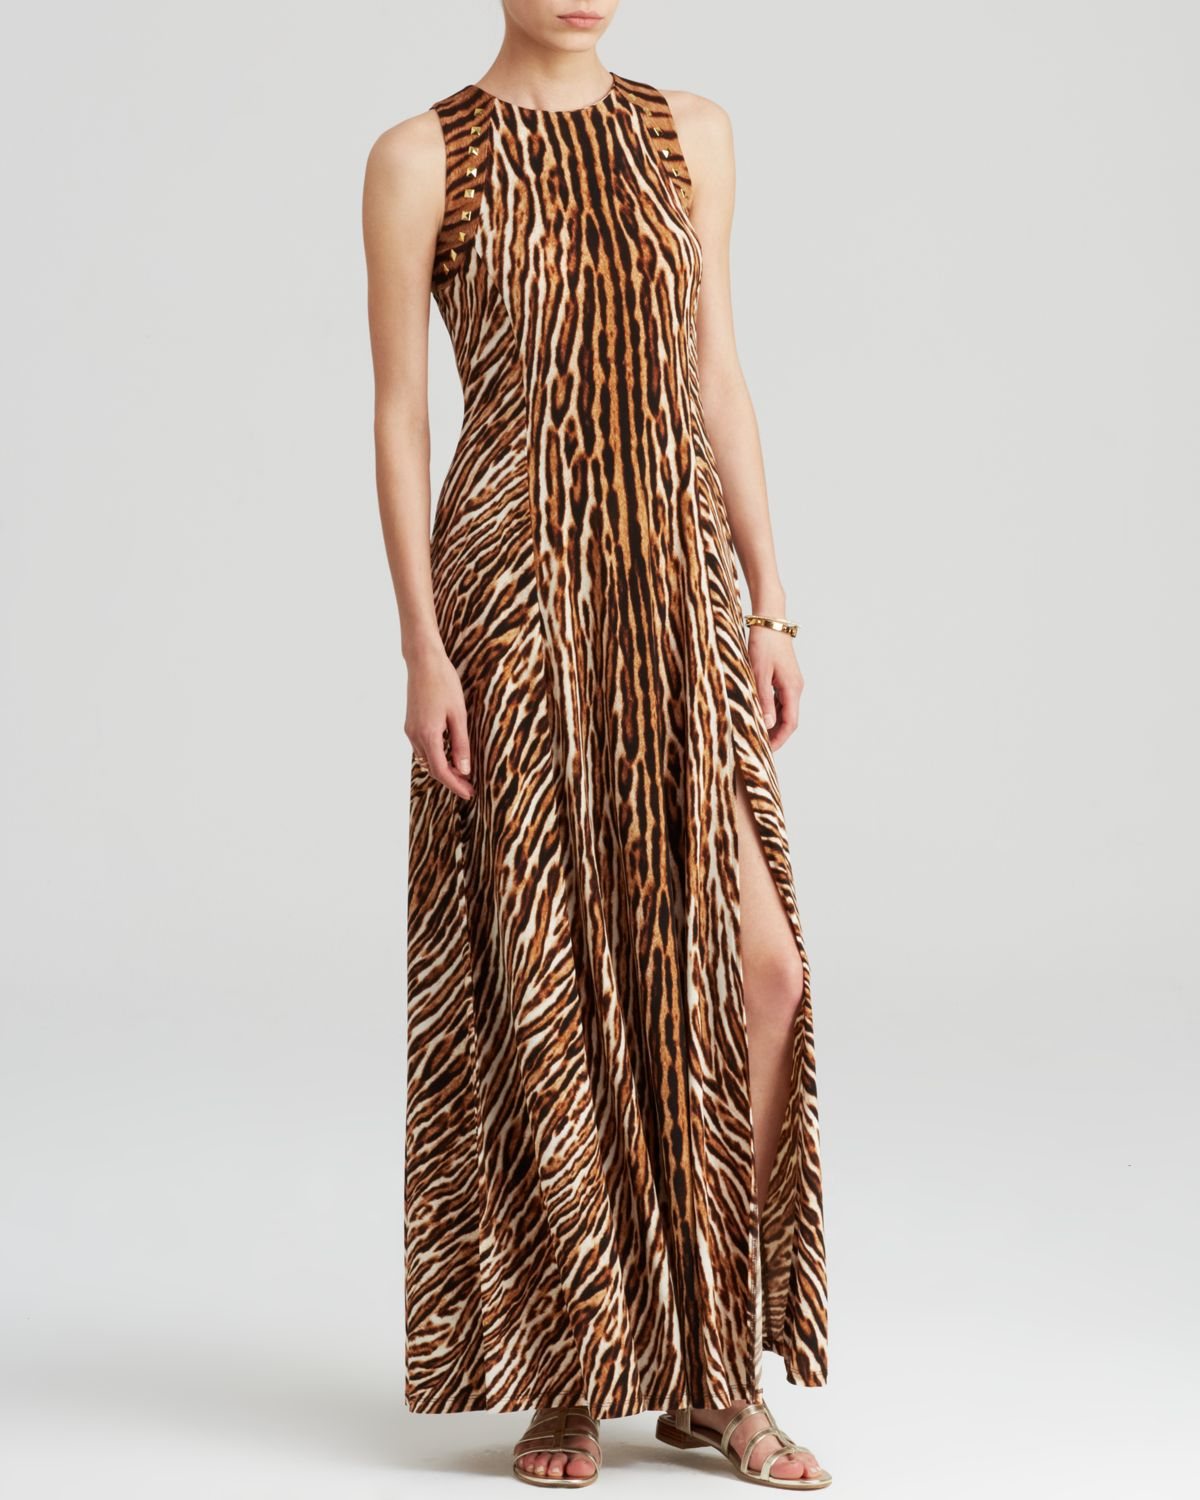 Michael michael kors Animal Print Maxi Dress in Brown | Lyst